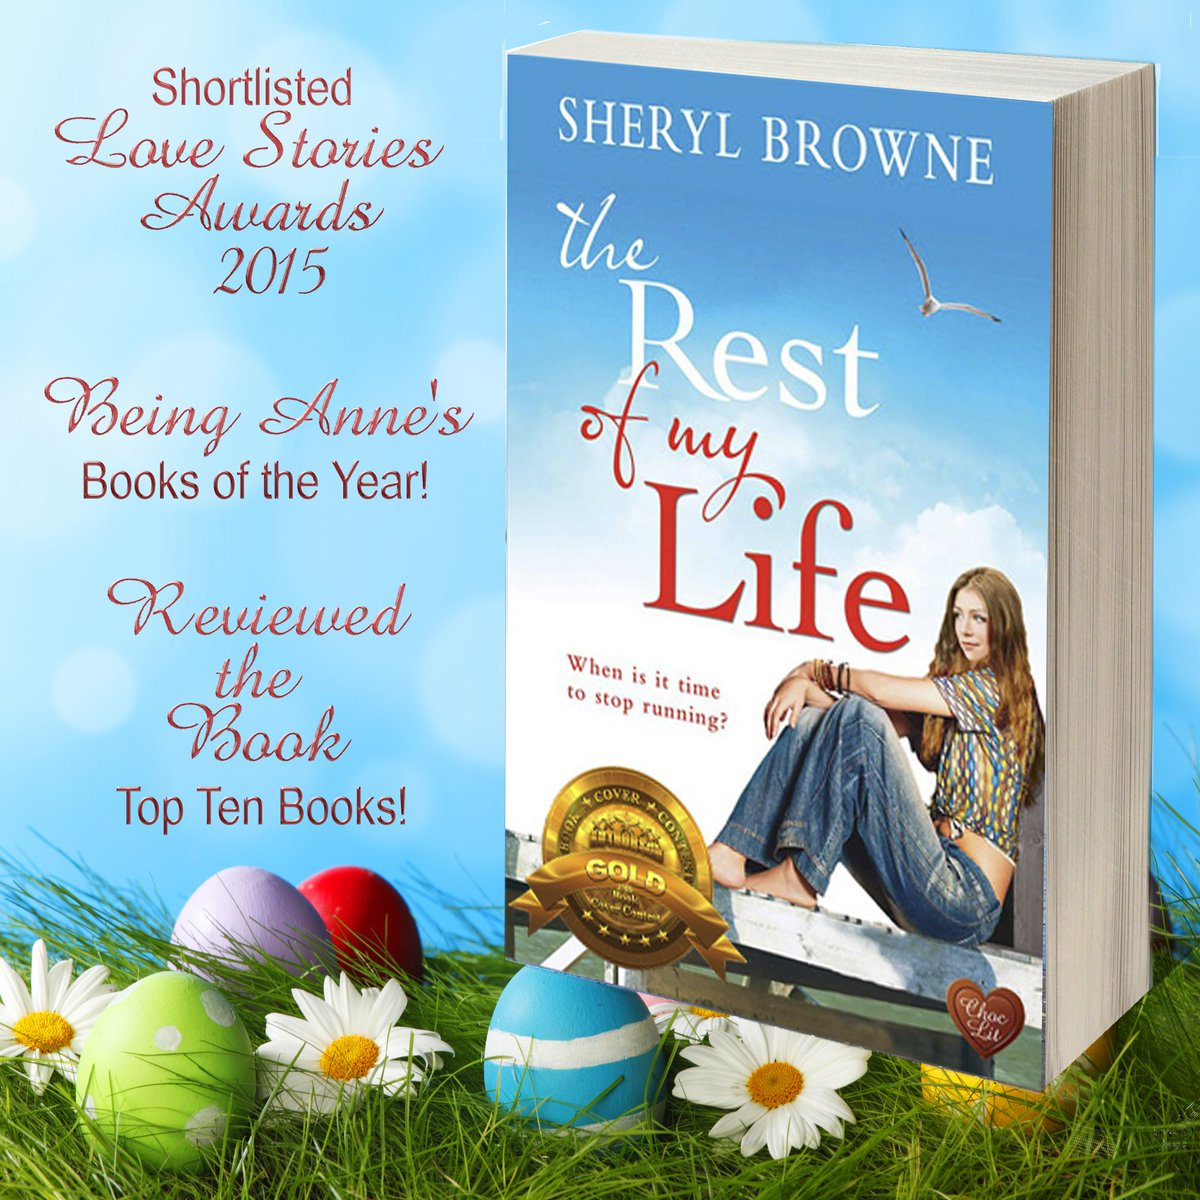 #Giveaway - Signed copy: The Rest of My Life + Choccy Egg! #TuesNews @RNAtweets @ChocLituk https://t.co/Aub5p3e81K https://t.co/81jFSY24fv